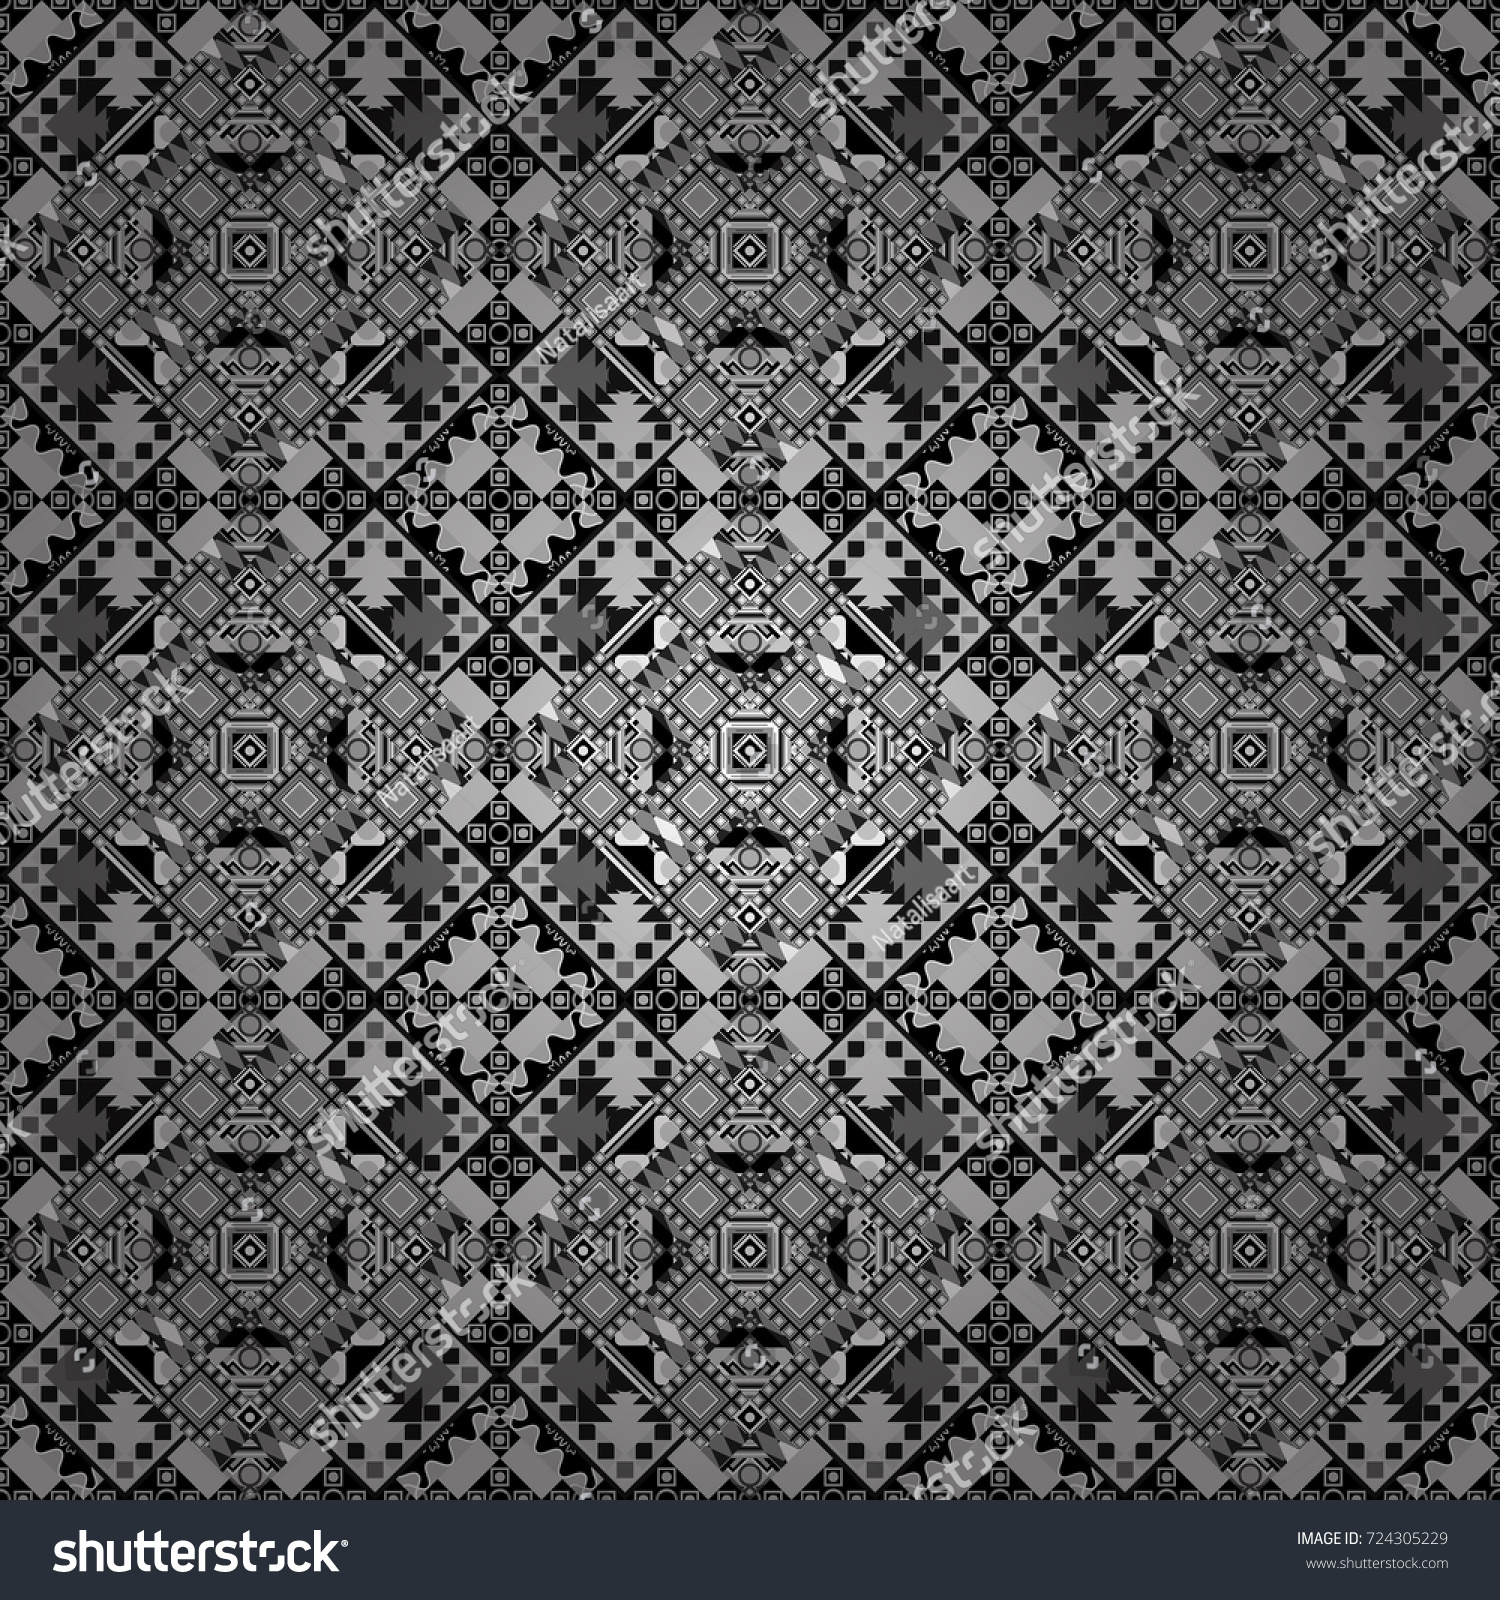 Vector repeated oriental motif for fabric or paper design Seamless ethnic patterns for border in gray black and white colors